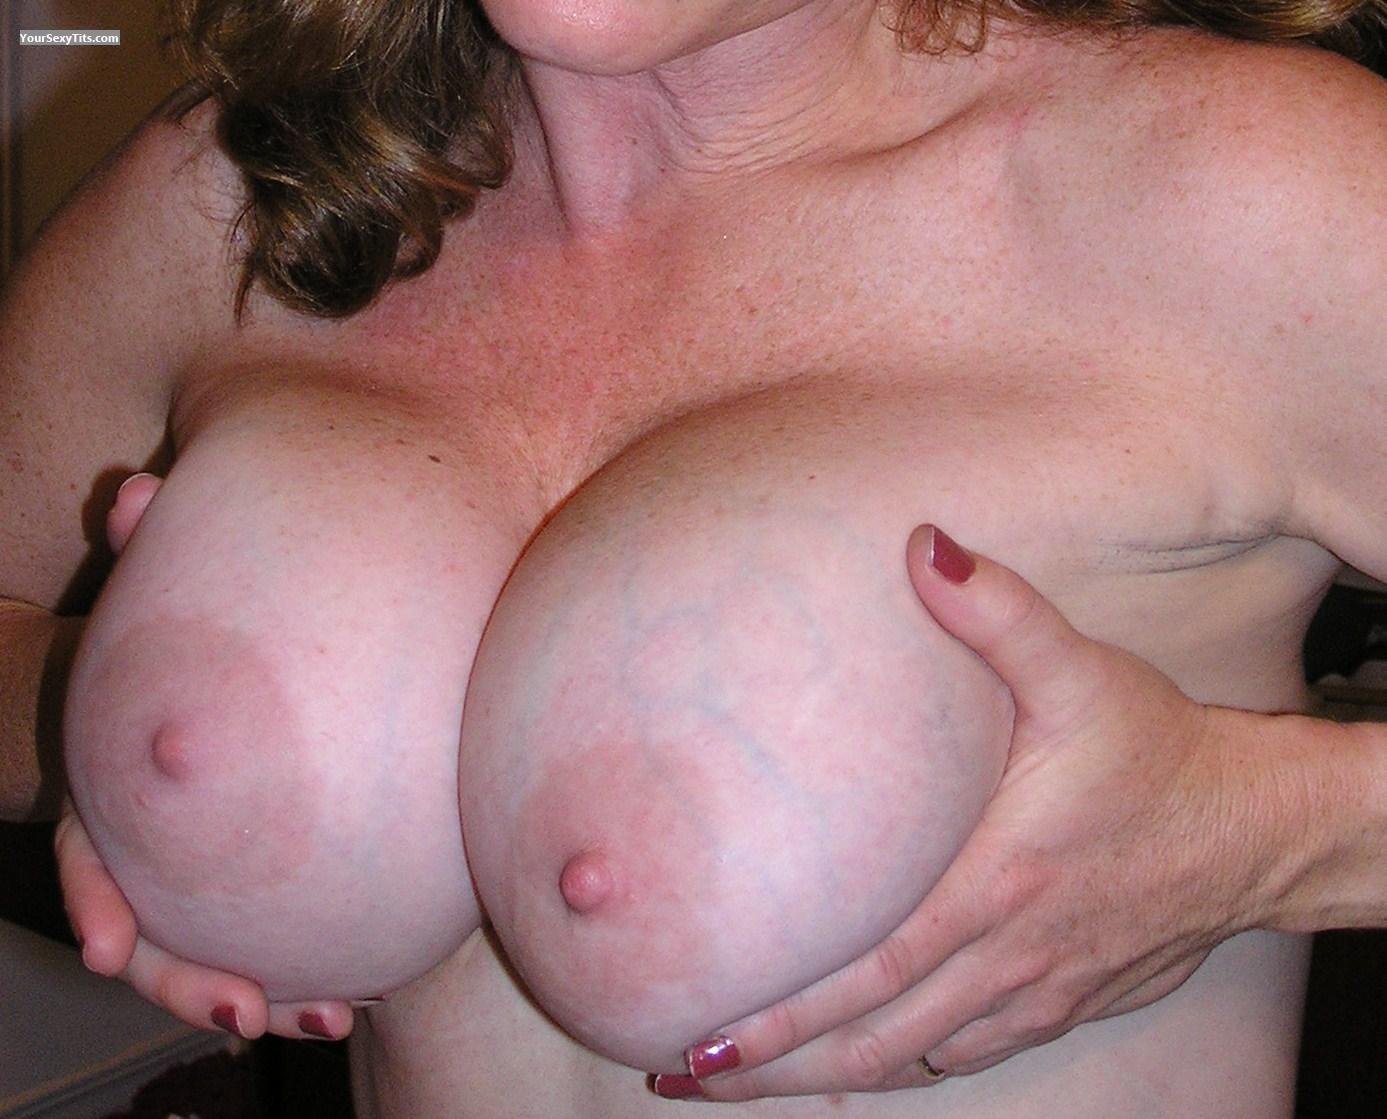 Very big Tits Bootsey